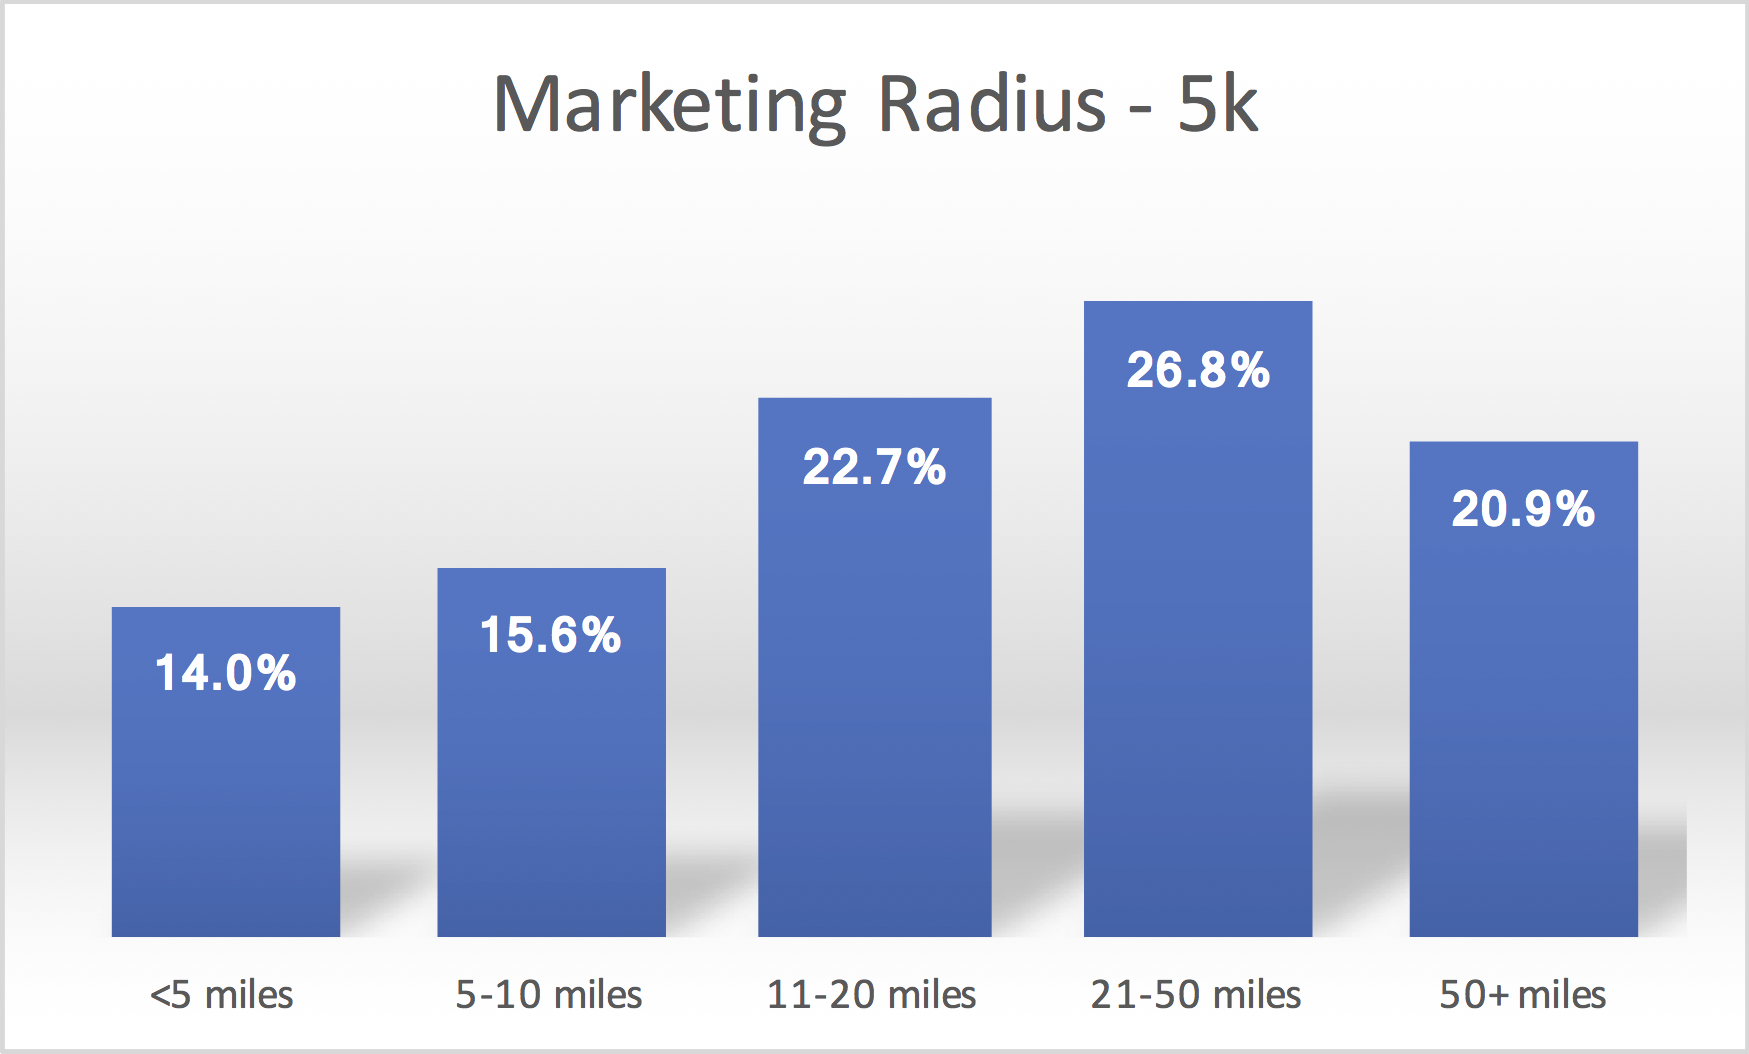 Marketing Radius - 5k